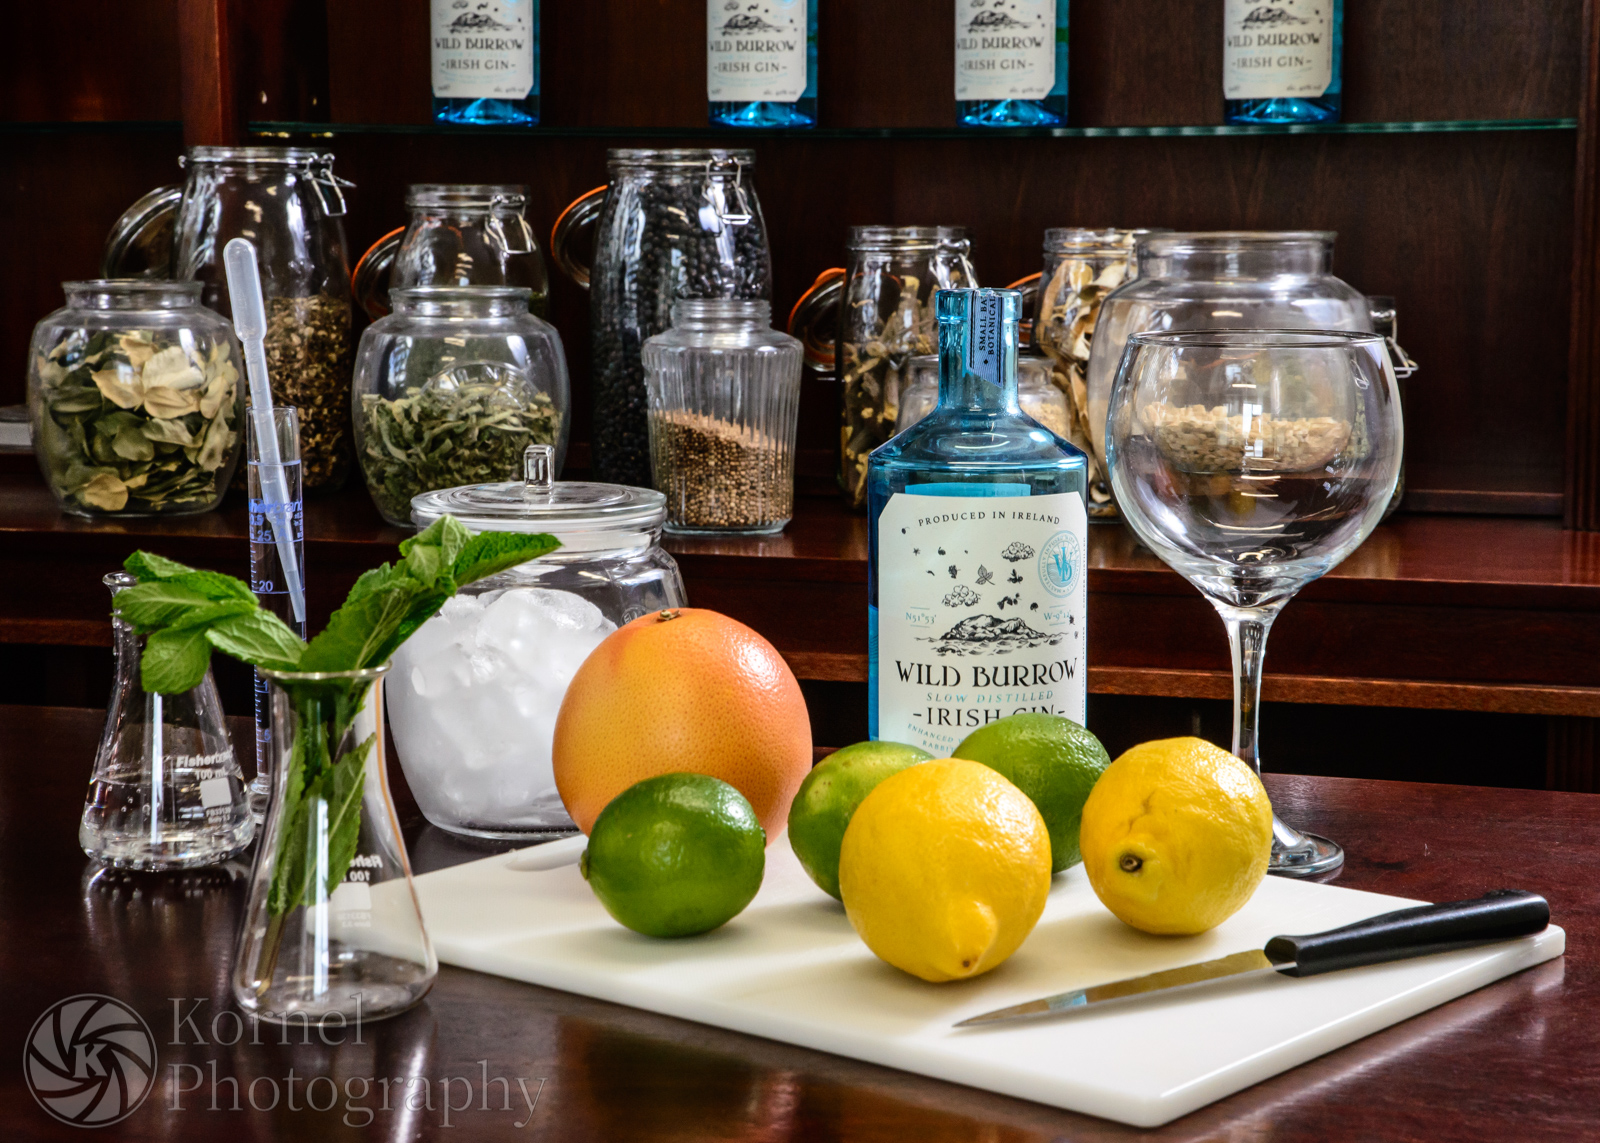 Commercial photos by Kornel Photography